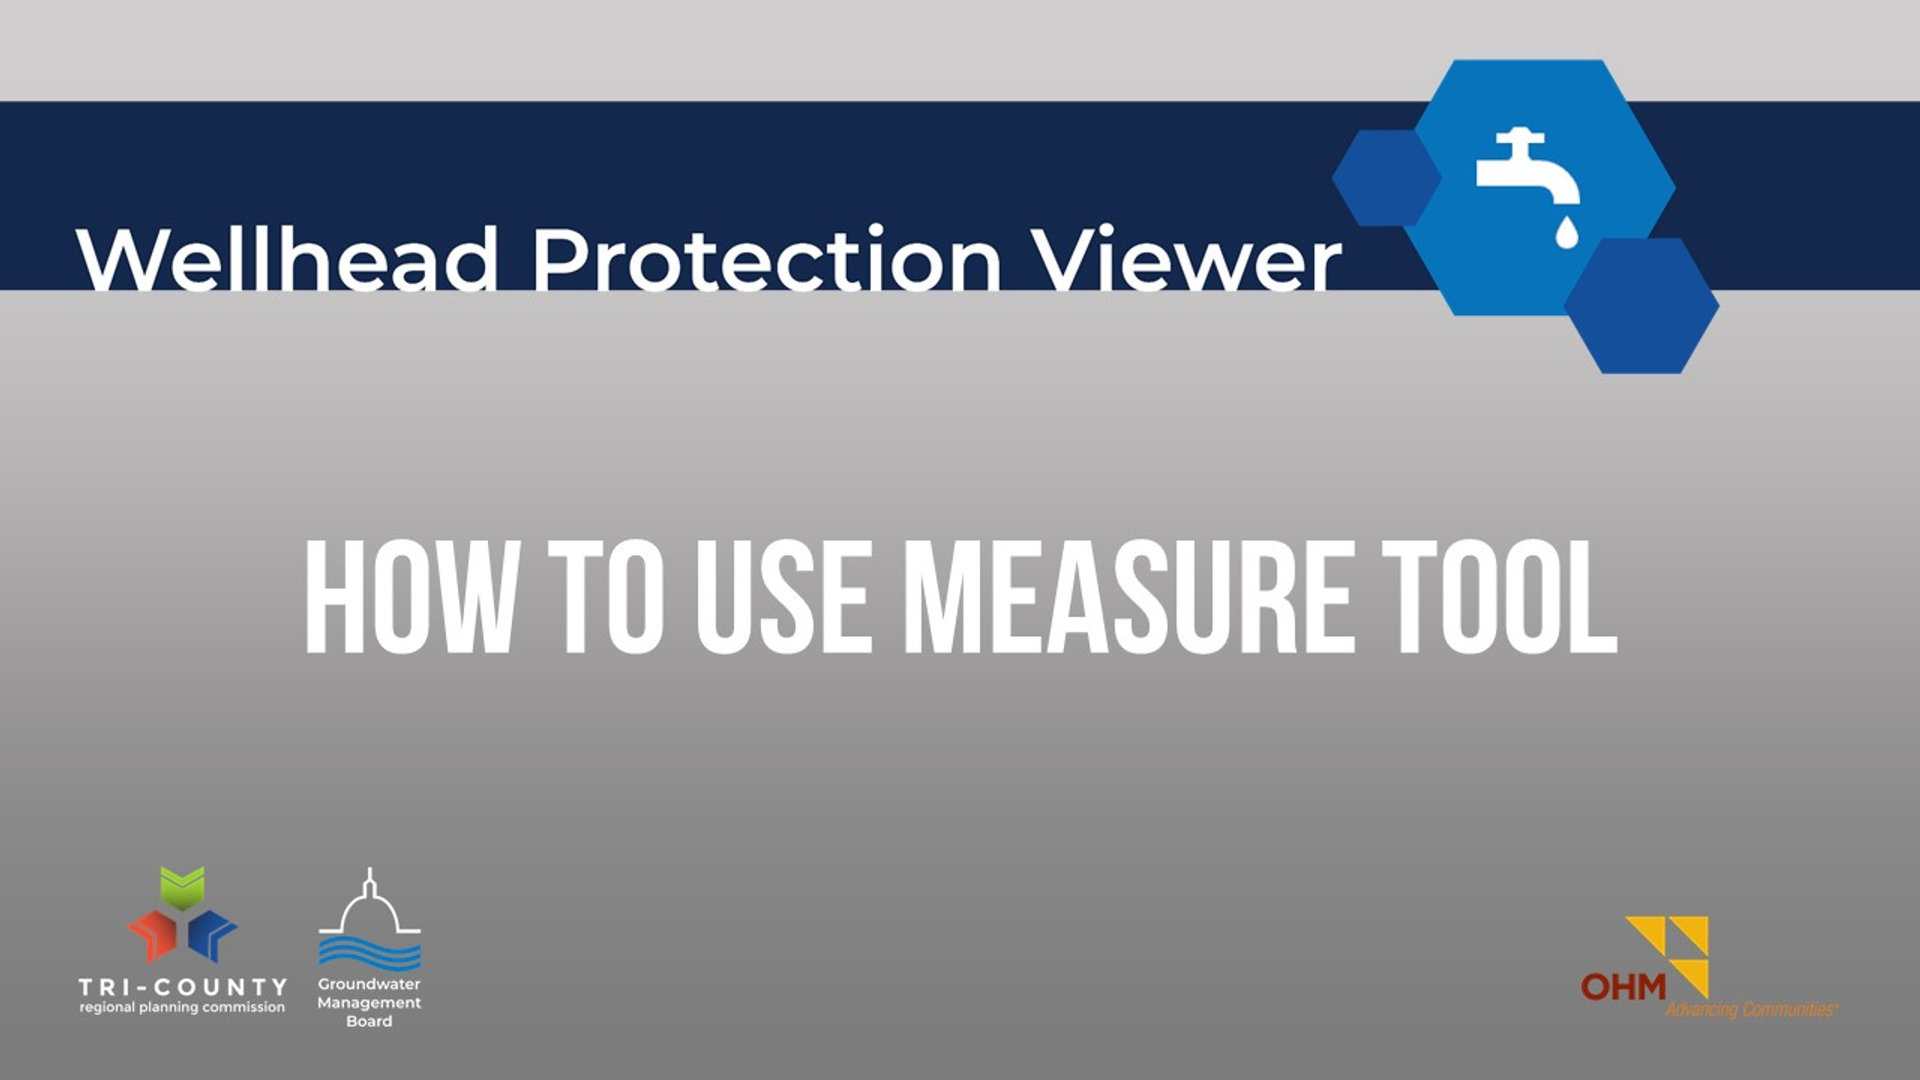 How to Use the Measure Tool